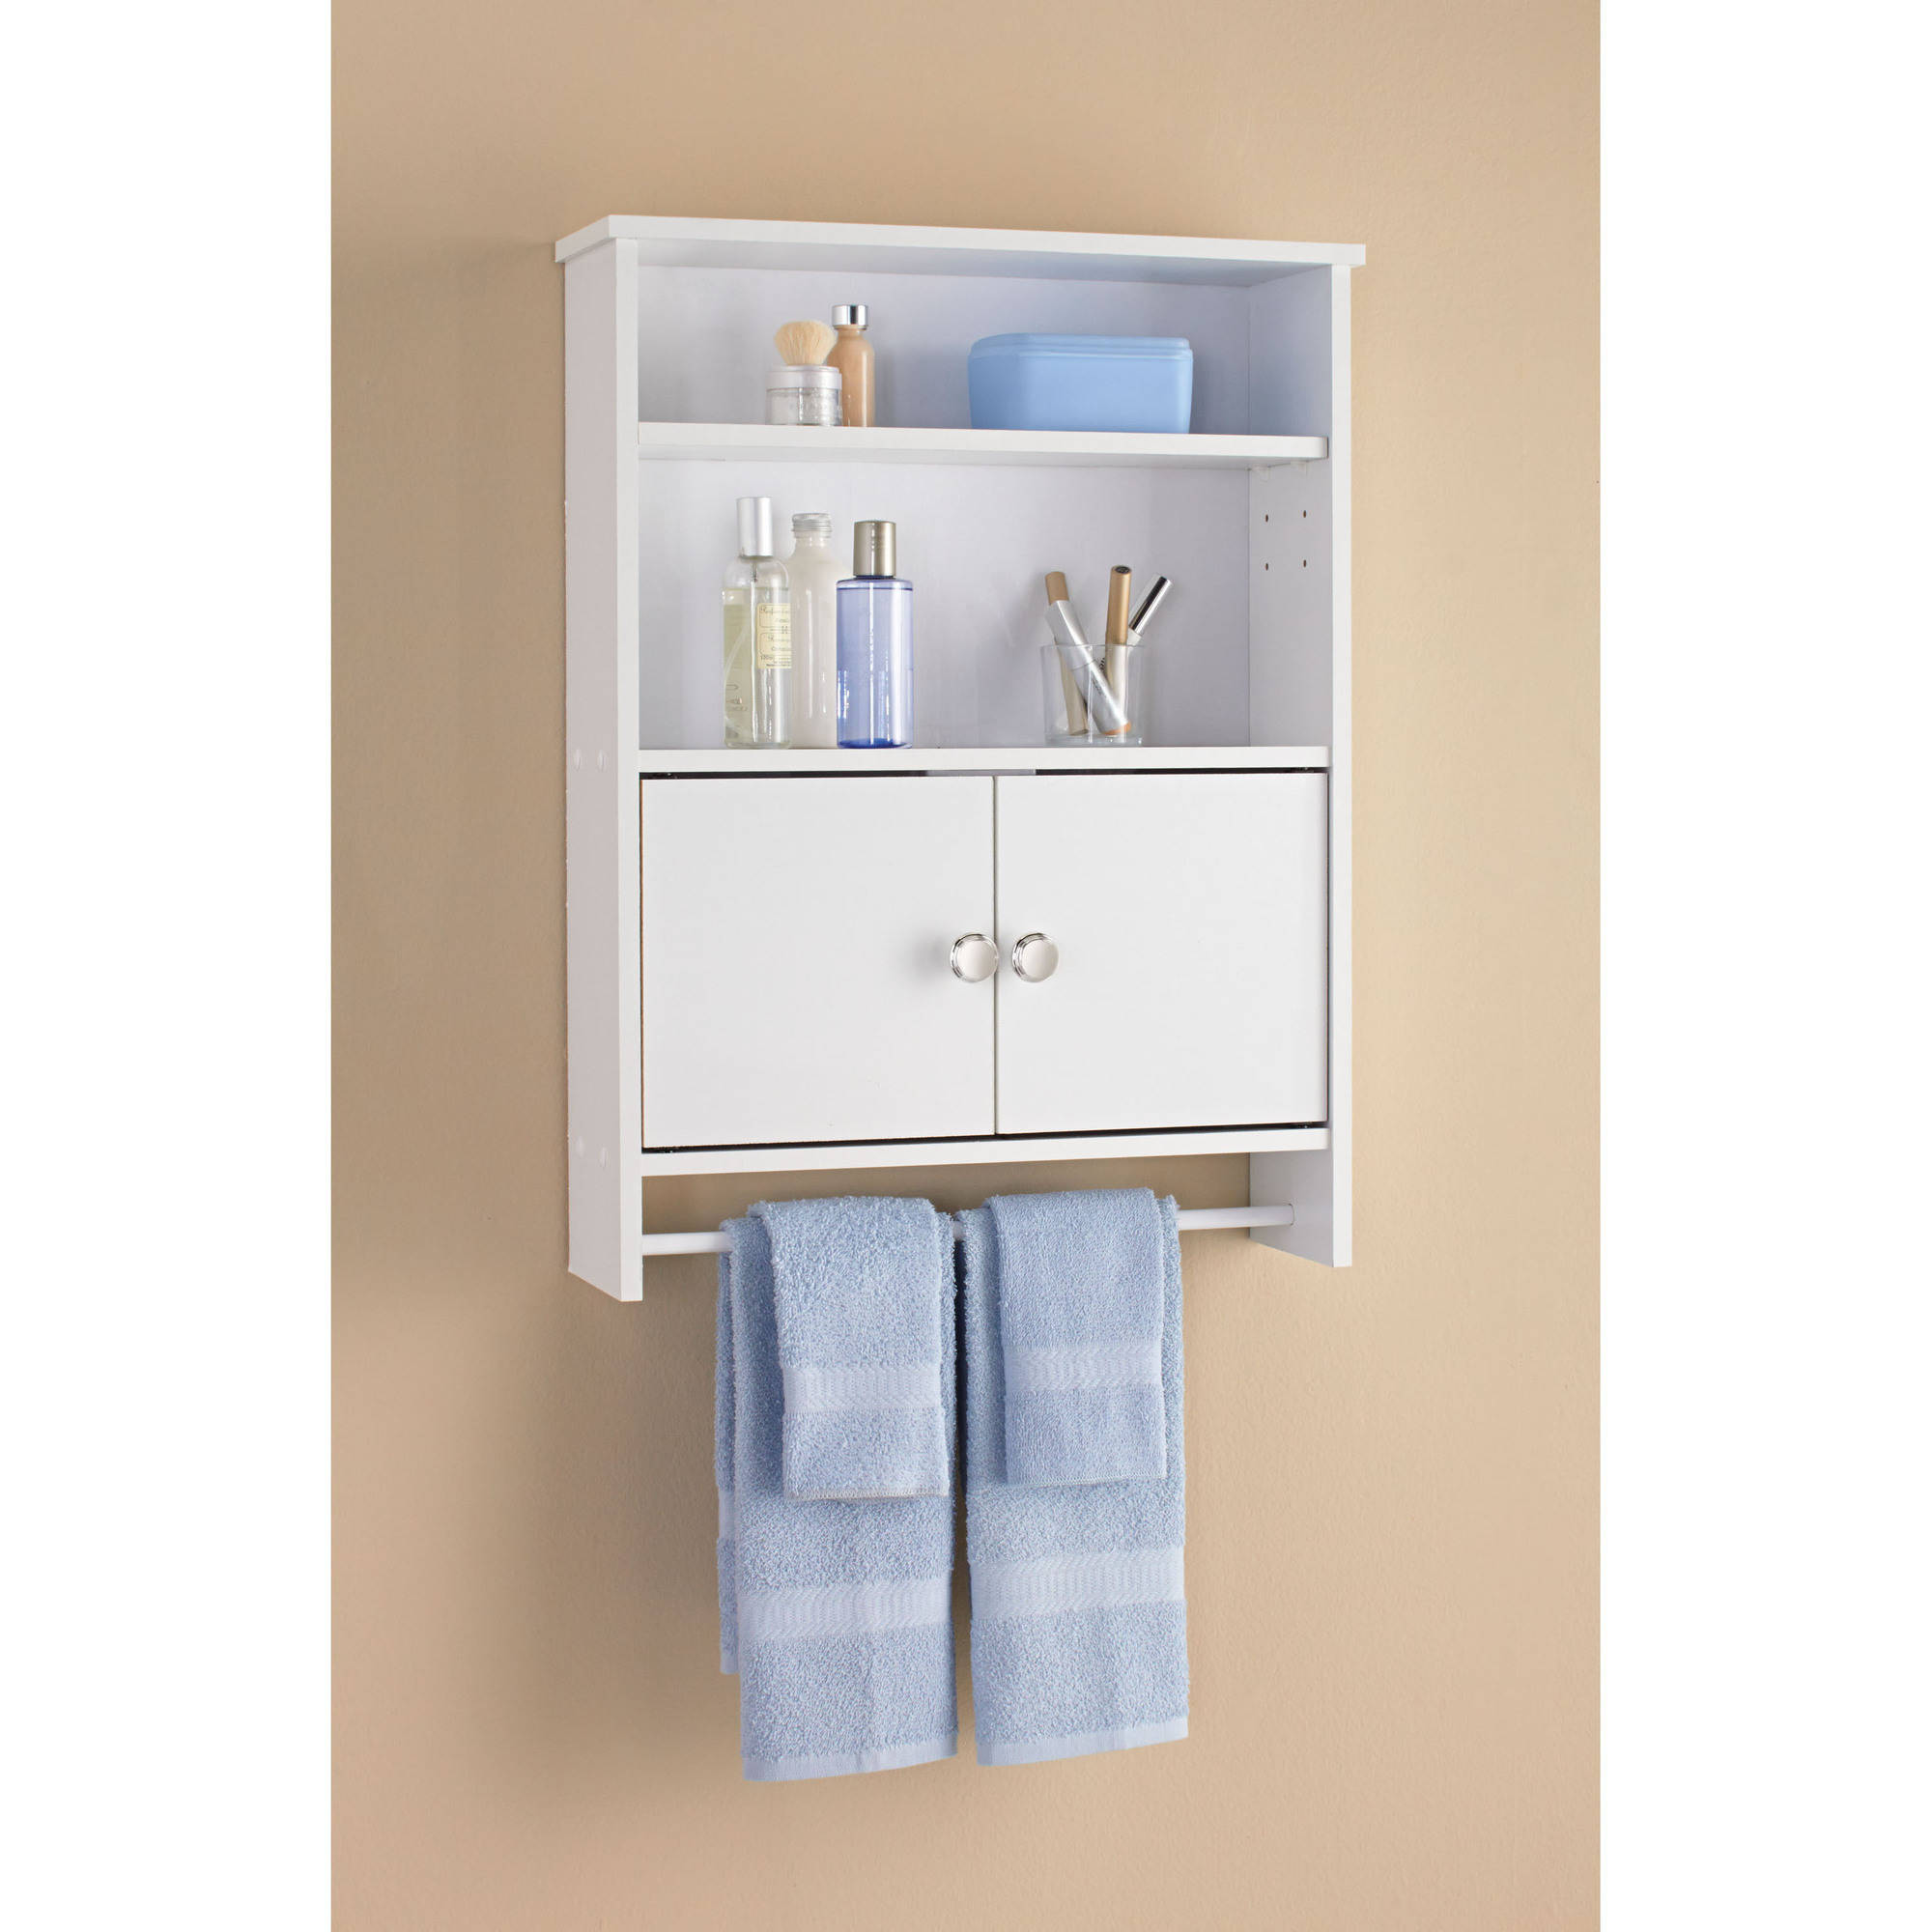 Bathroom wall cabinet white - Bathroom Wall Cabinet White 31